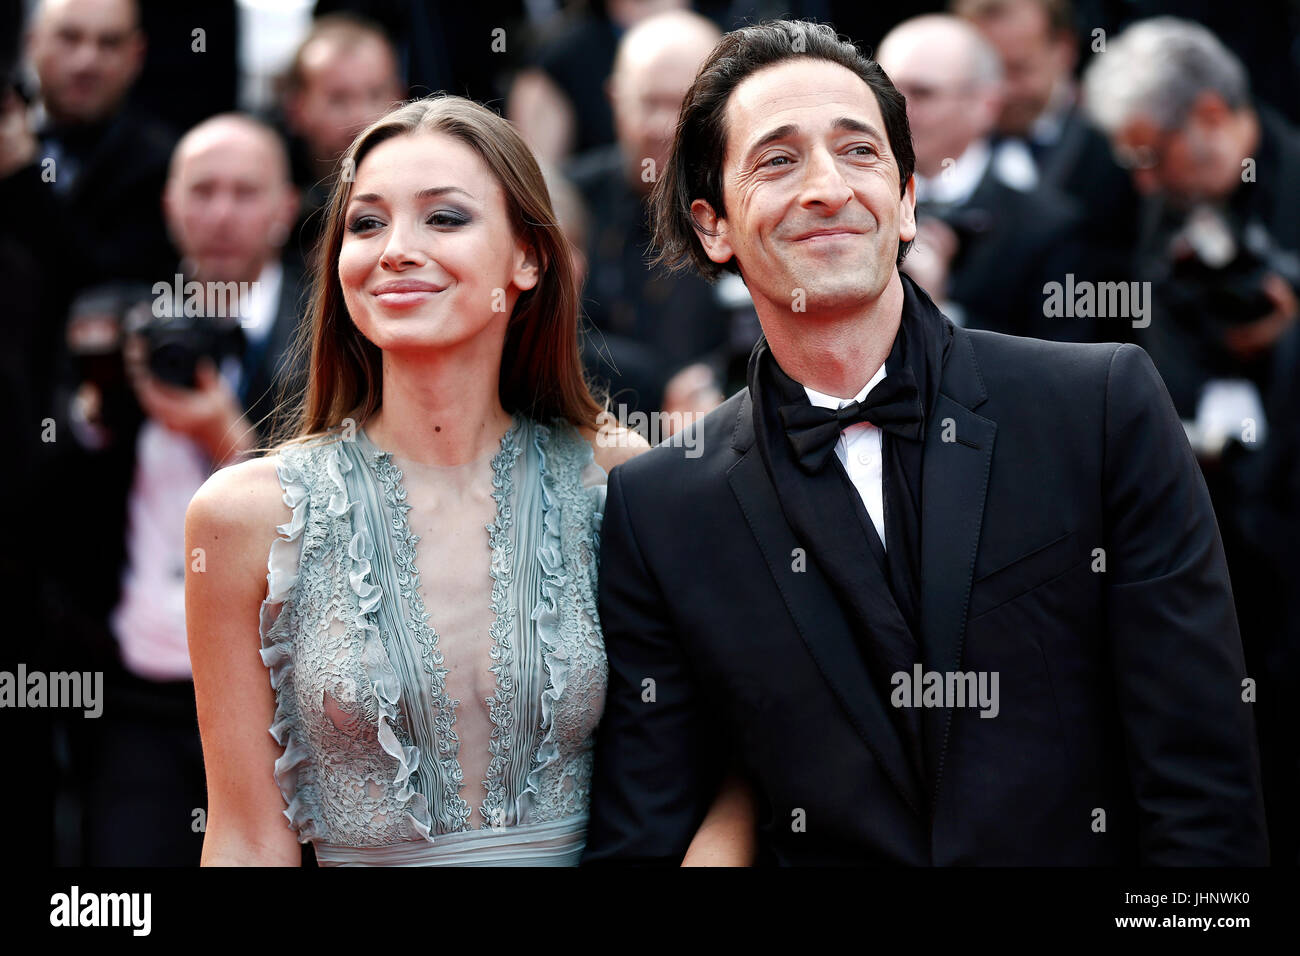 CANNES, FRANCE - MAY 23: Adrien Brody and Lara Lieto attend the 70th Anniversary of the 70th Cannes Film Festival - Stock Image